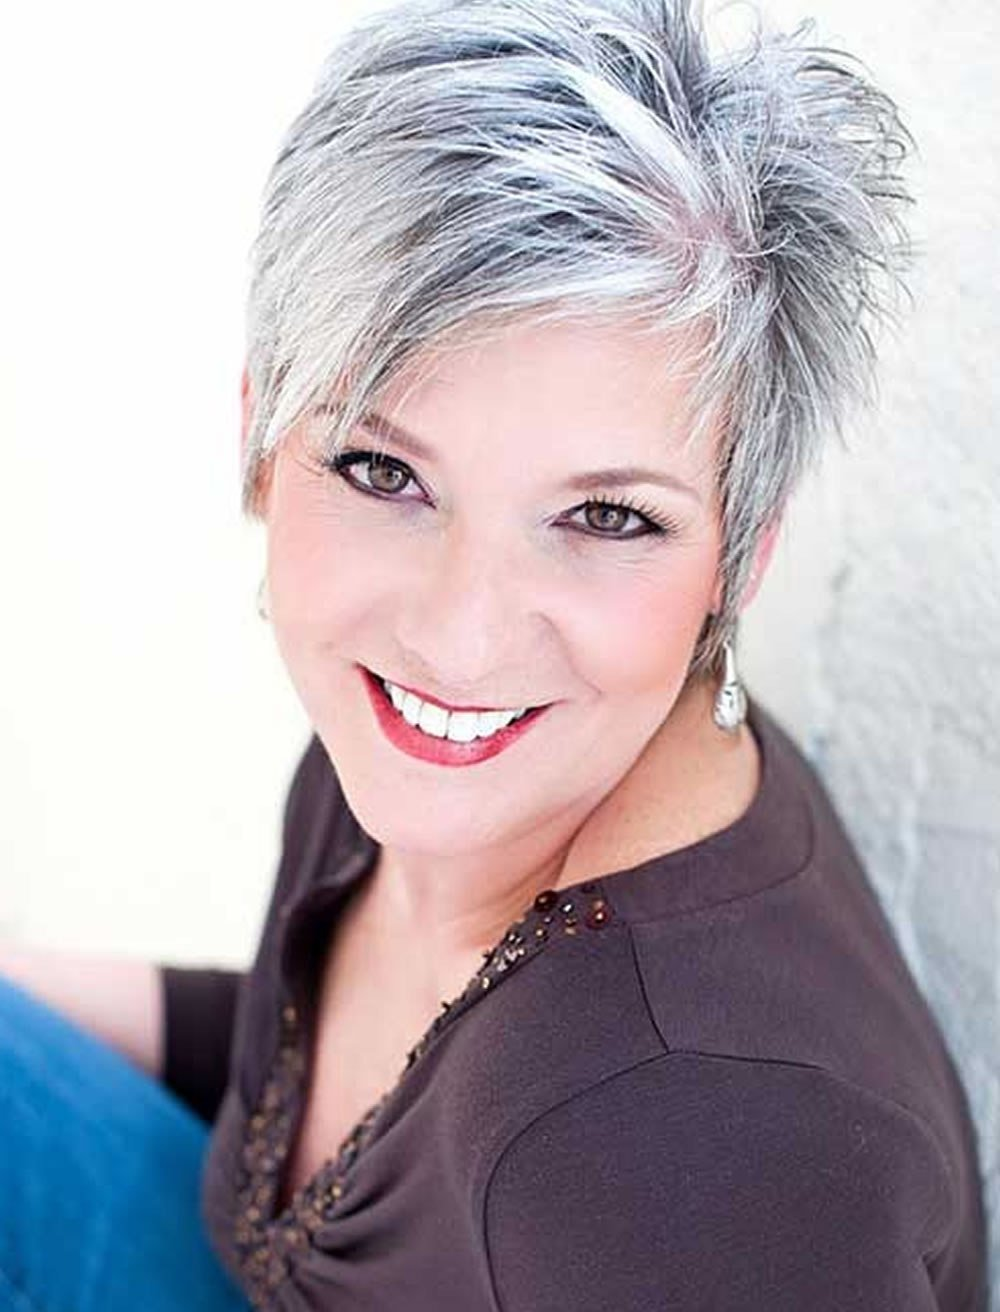 New 33 Top Pixie Hairstyles For Older Women Short Pixie Ideas With Pictures